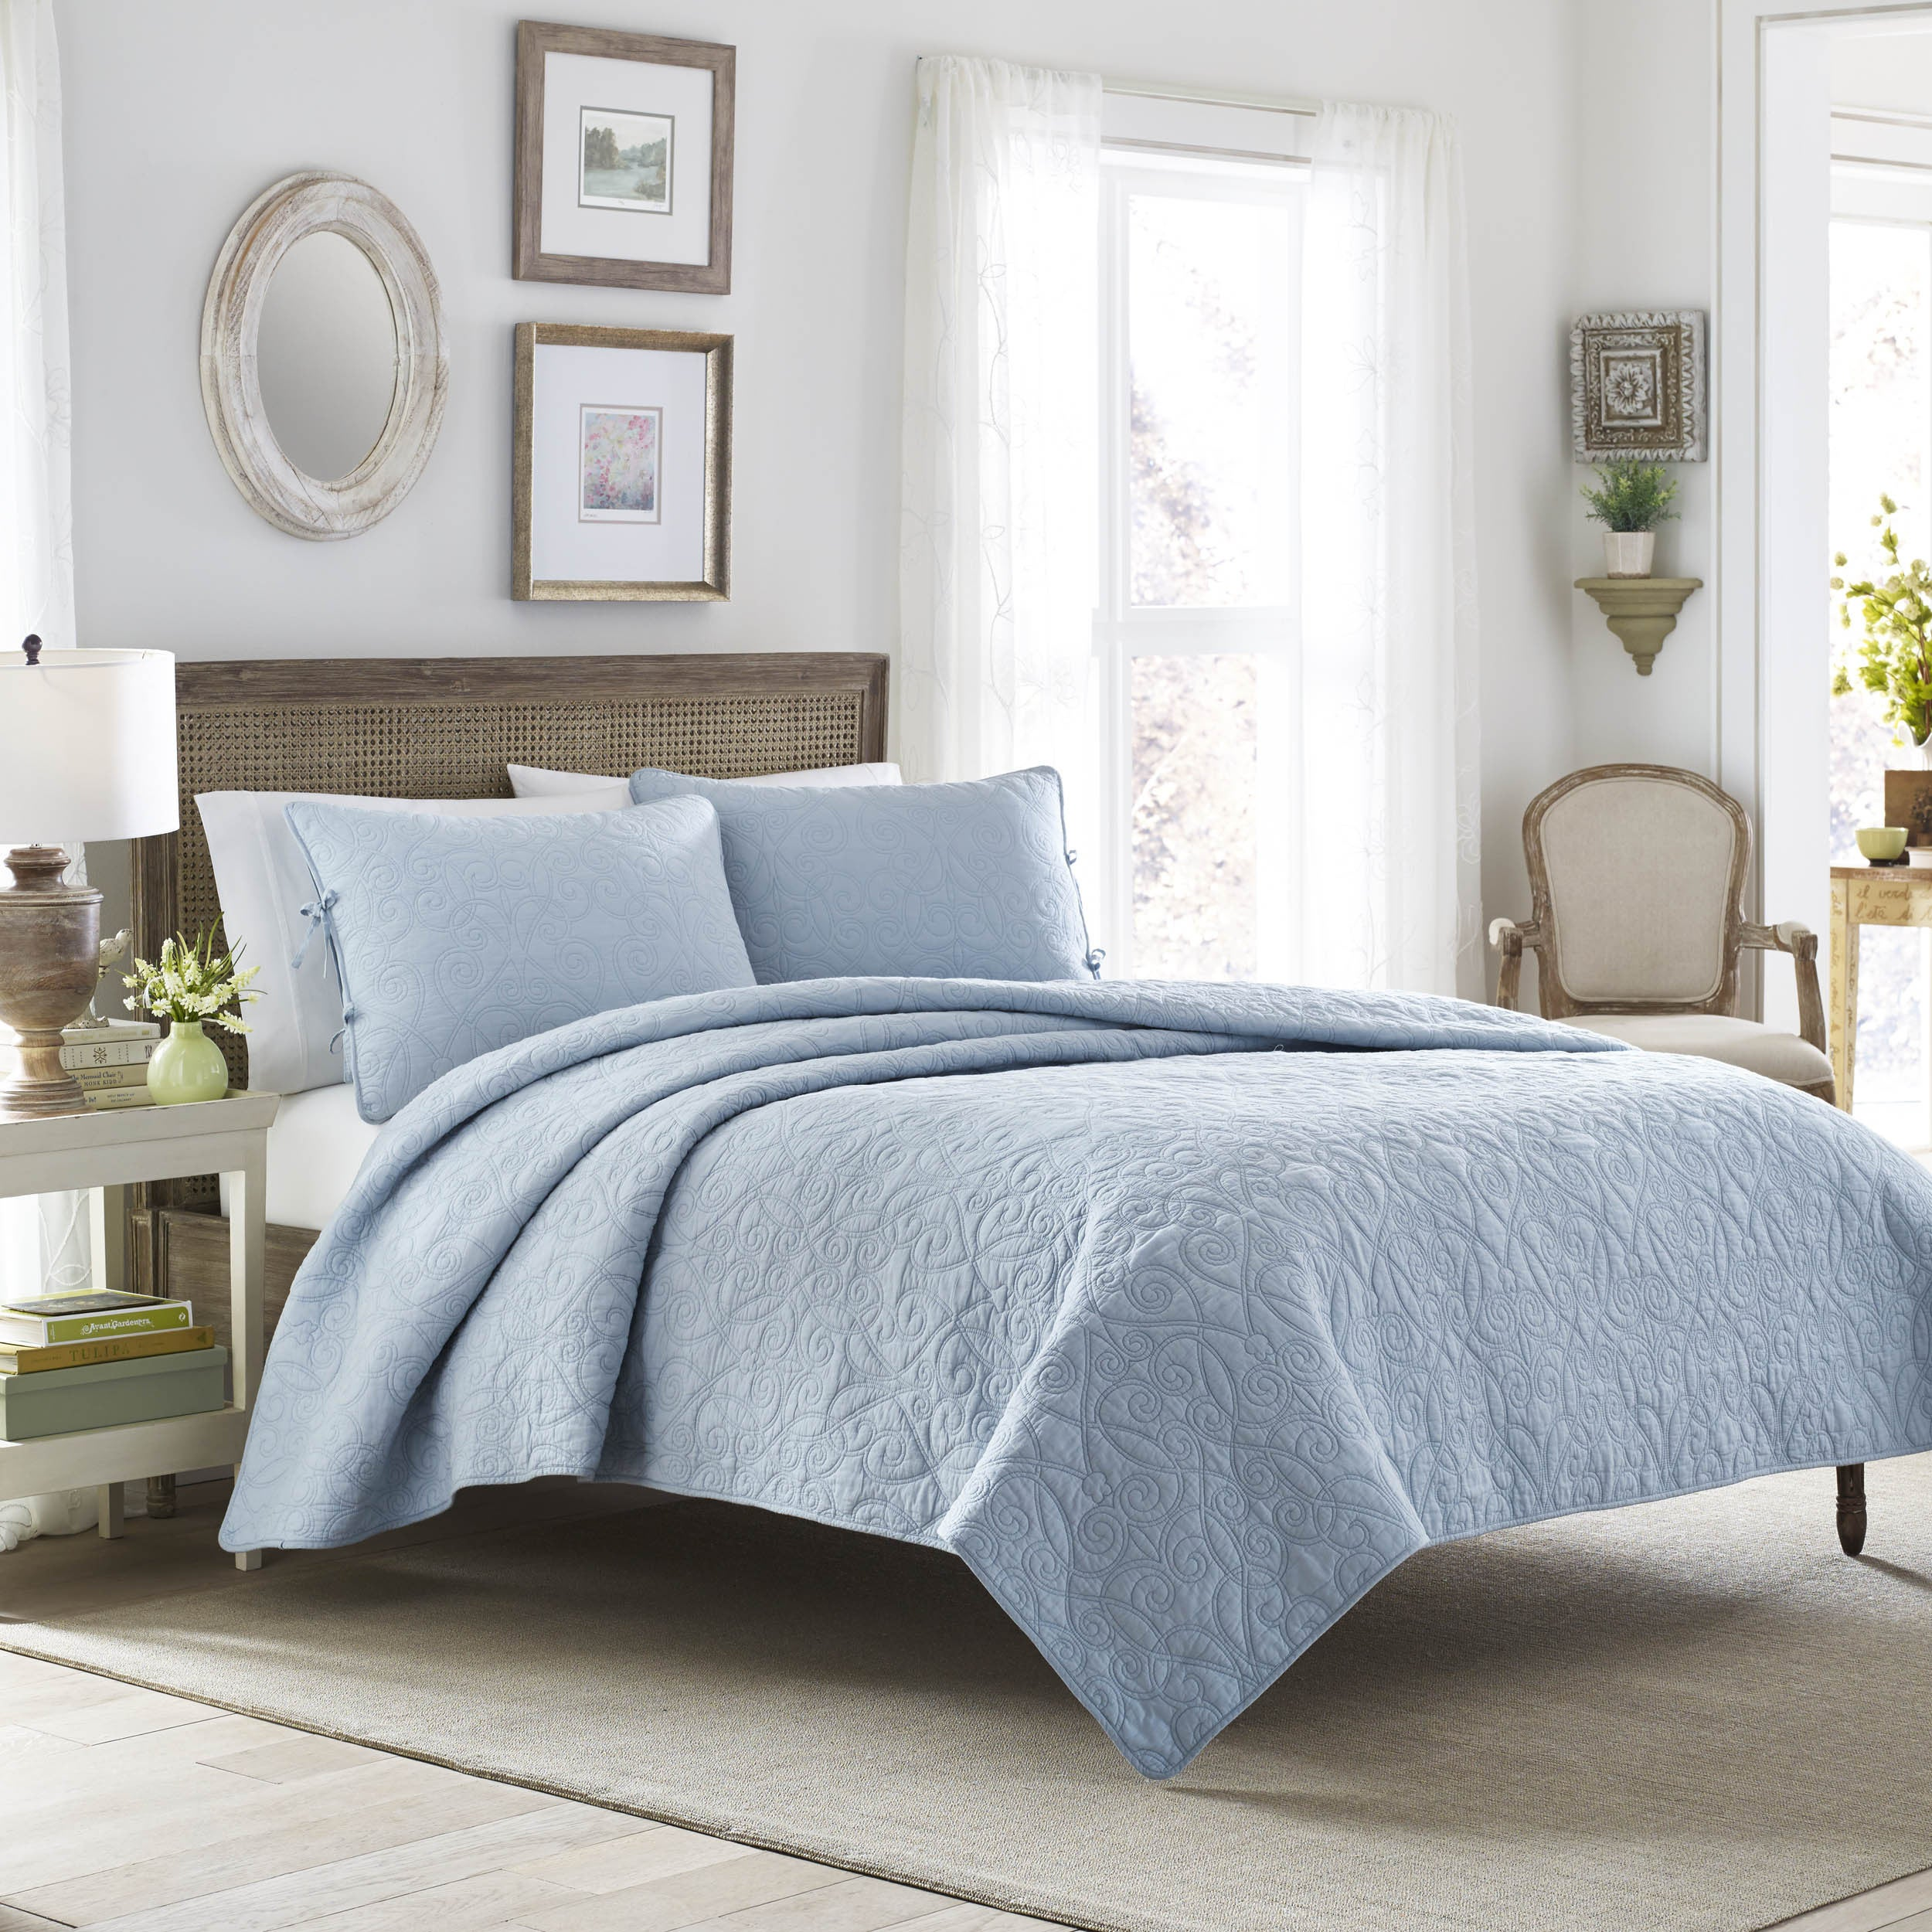 Laura Ashley Felicity Baby Blue Cotton 3-piece Quilt Set ...